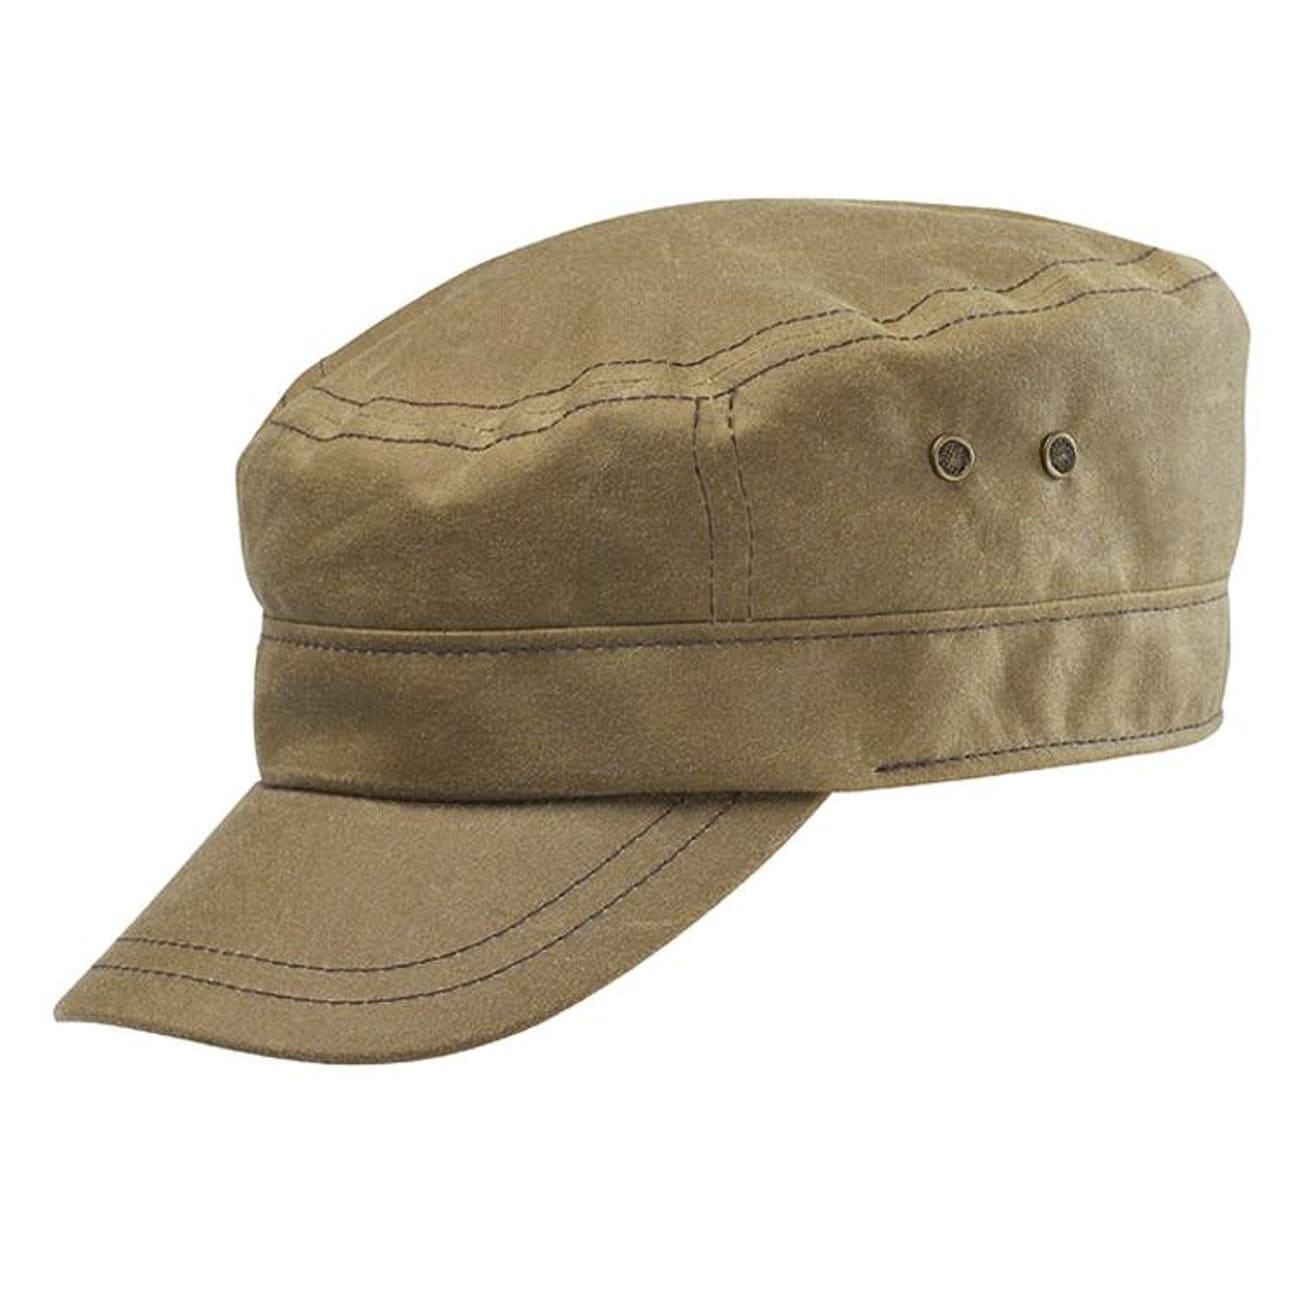 Gorra Austin Waxed Cotton by Stetson - Gorras - sombreroshop.es 08fa6b3fb9d